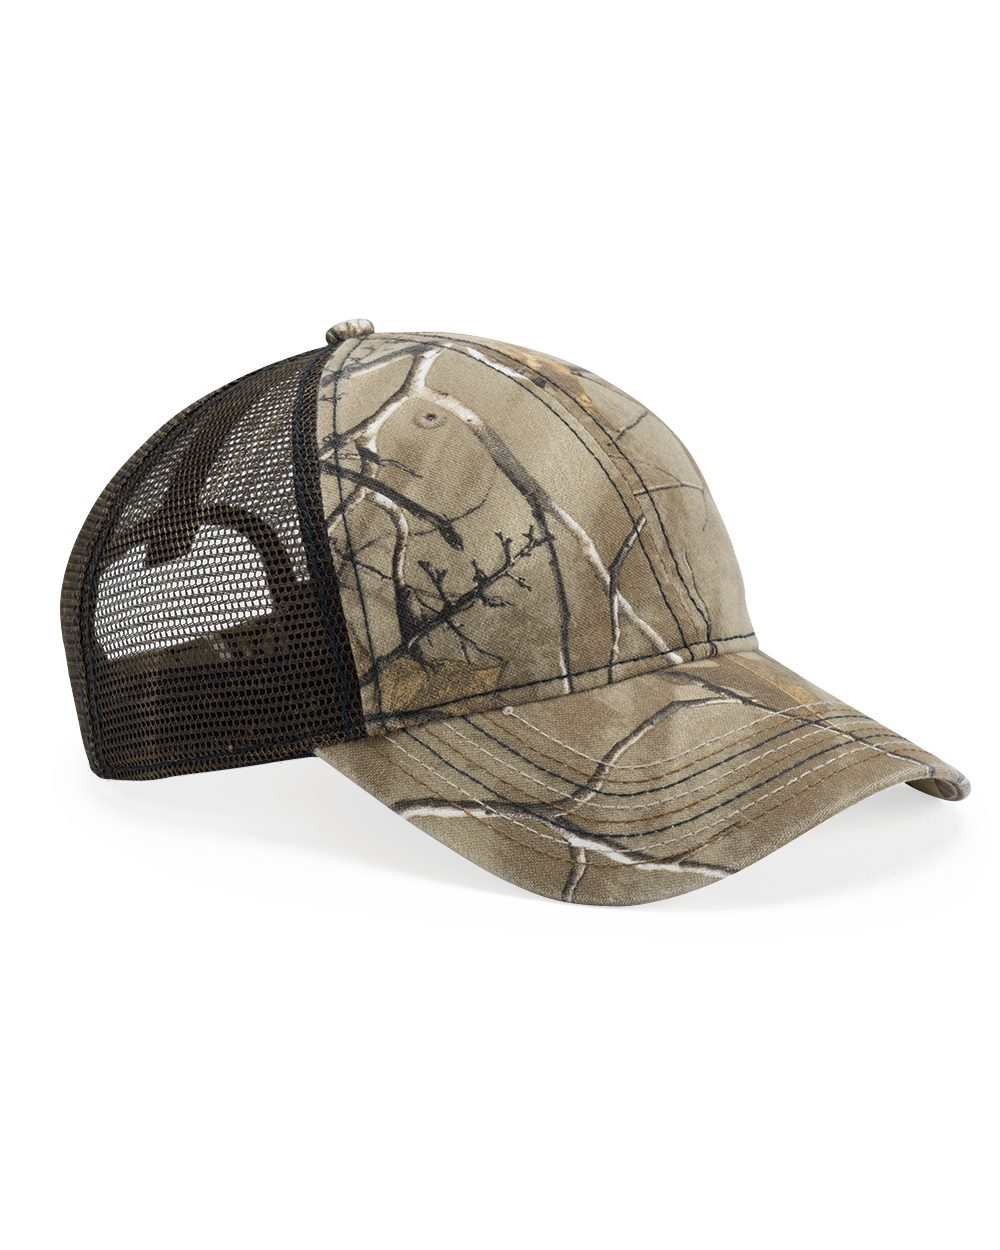 Outdoor Cap CWF310 - Mesh Back Camo Cap With Flag Undervisor